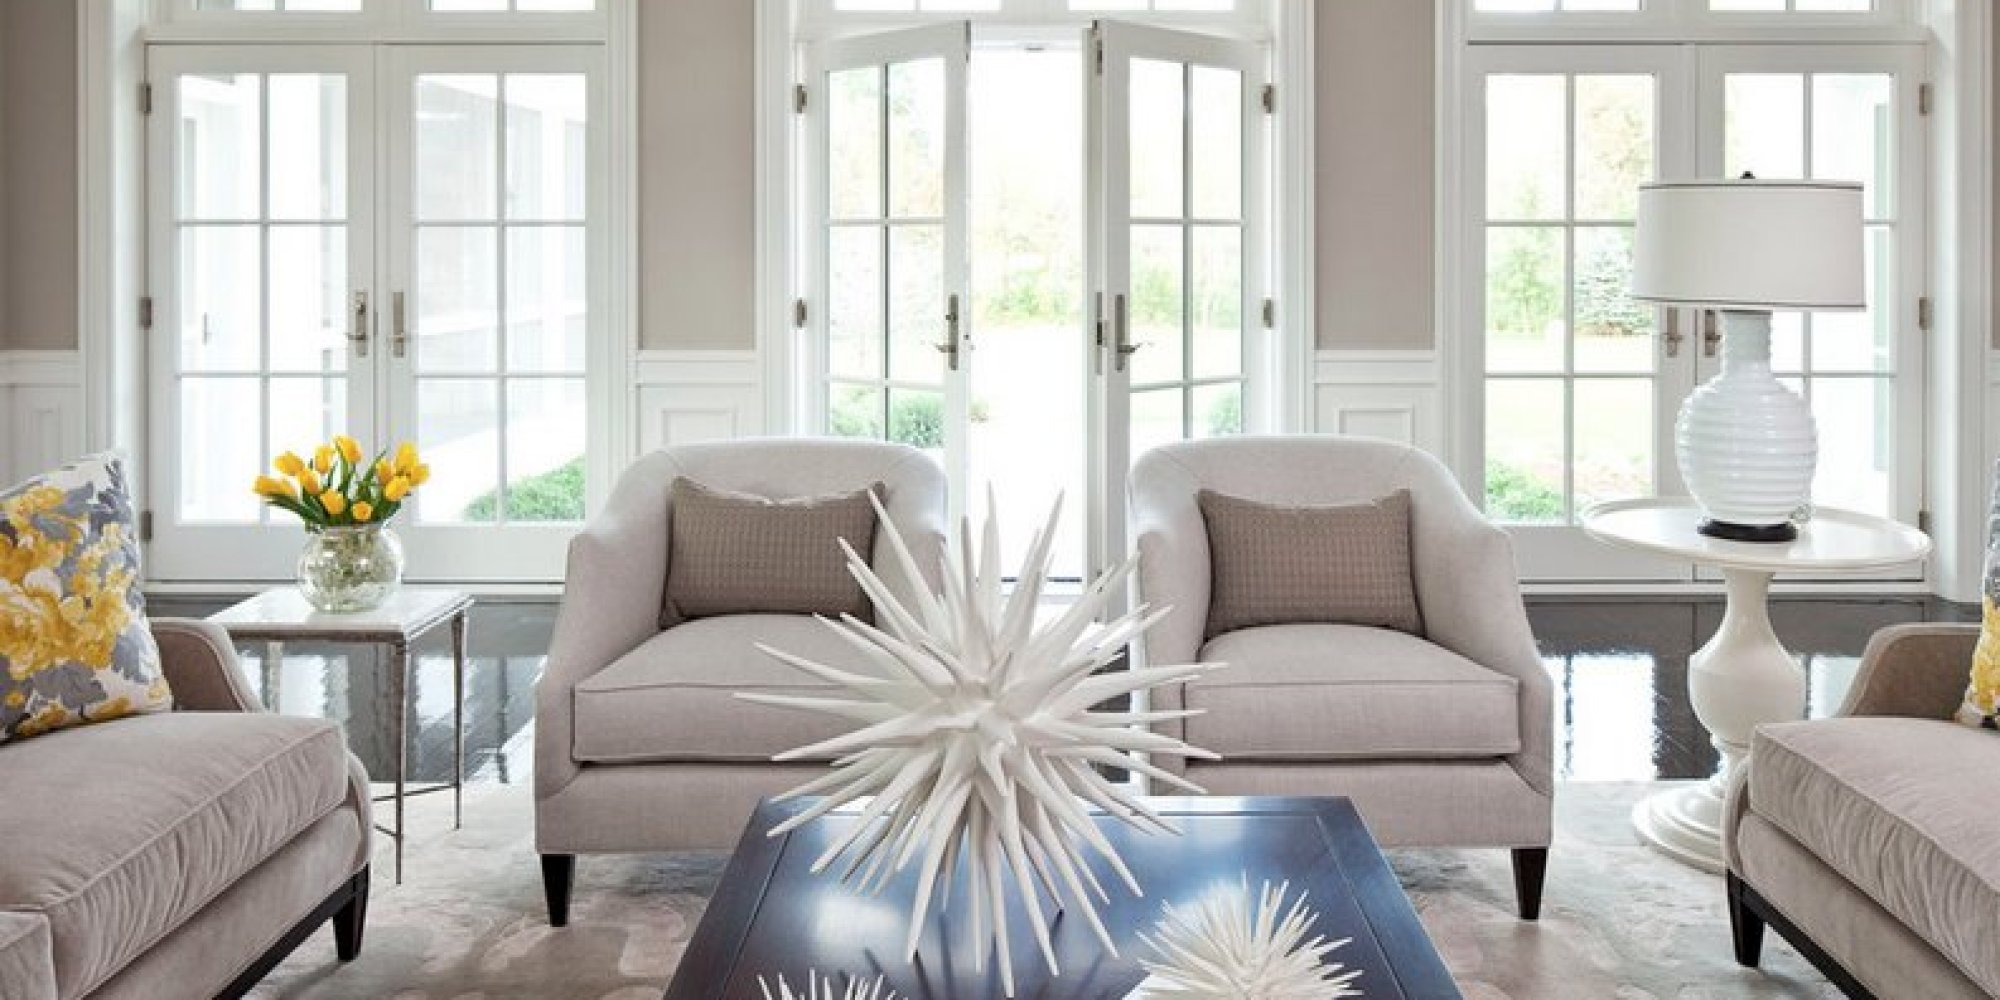 neutral home interior colors best neutral paint colors behr the 8 best neutral paint colors that ll work in any home no neutral